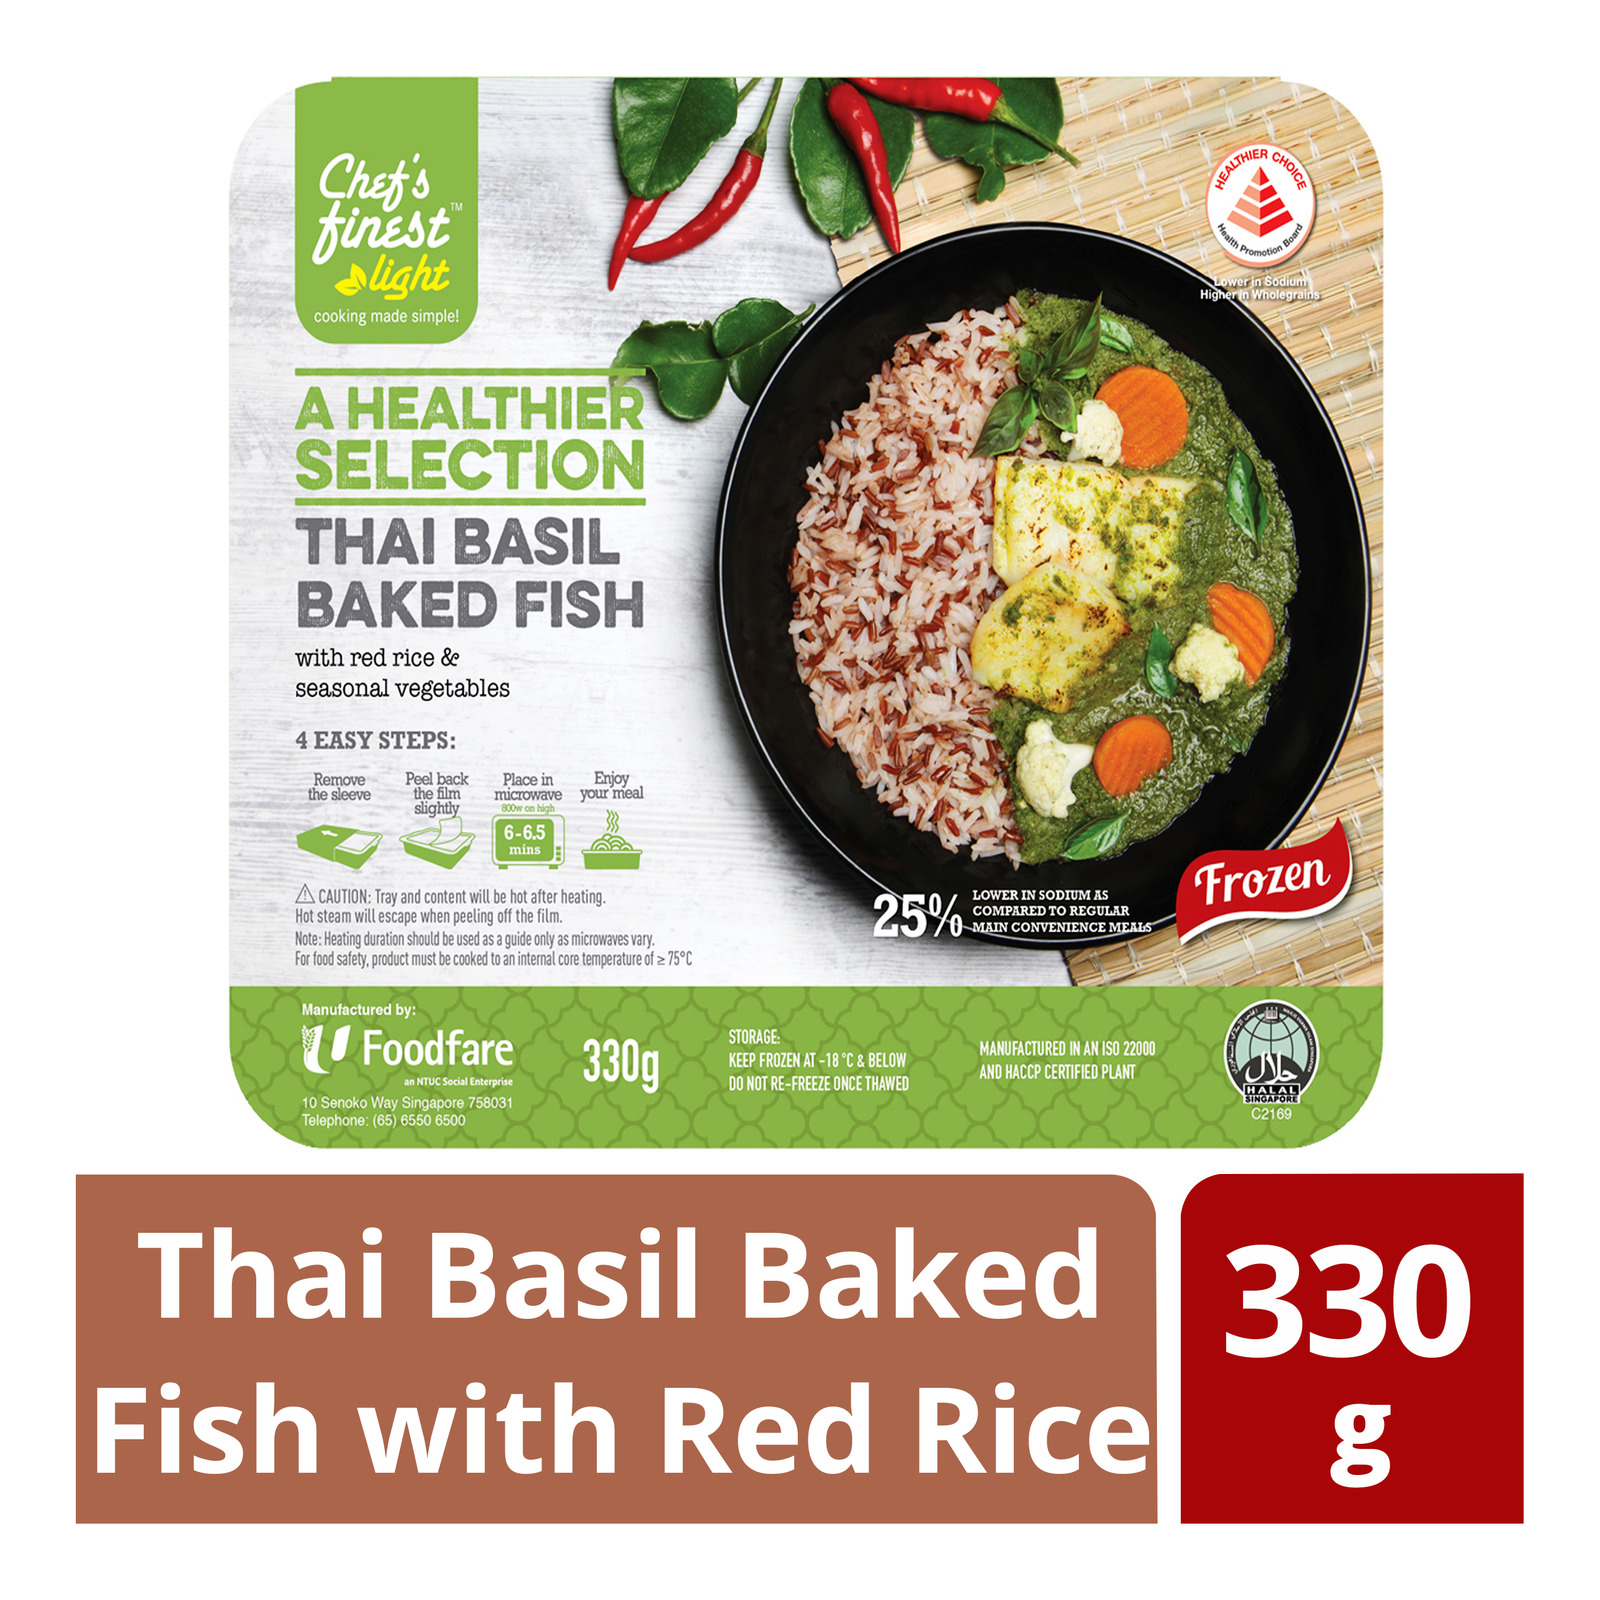 Chef's Finest Ready Meal - Thai Basil Baked Fish with Red Rice